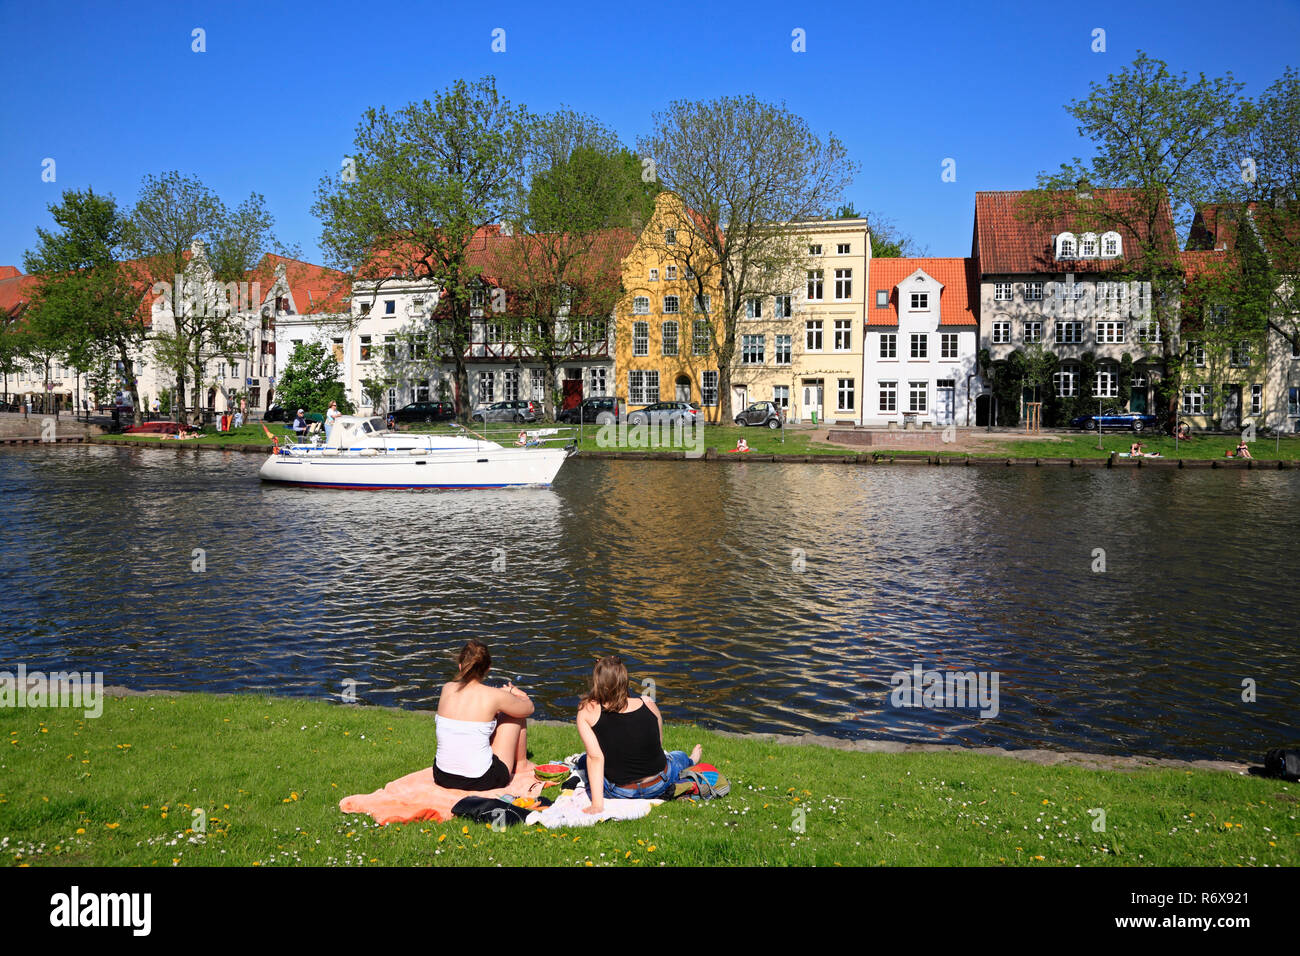 View across Obertrave river, Lübeck, Luebeck, Schleswig-Holstein, Germany, Europe - Stock Image